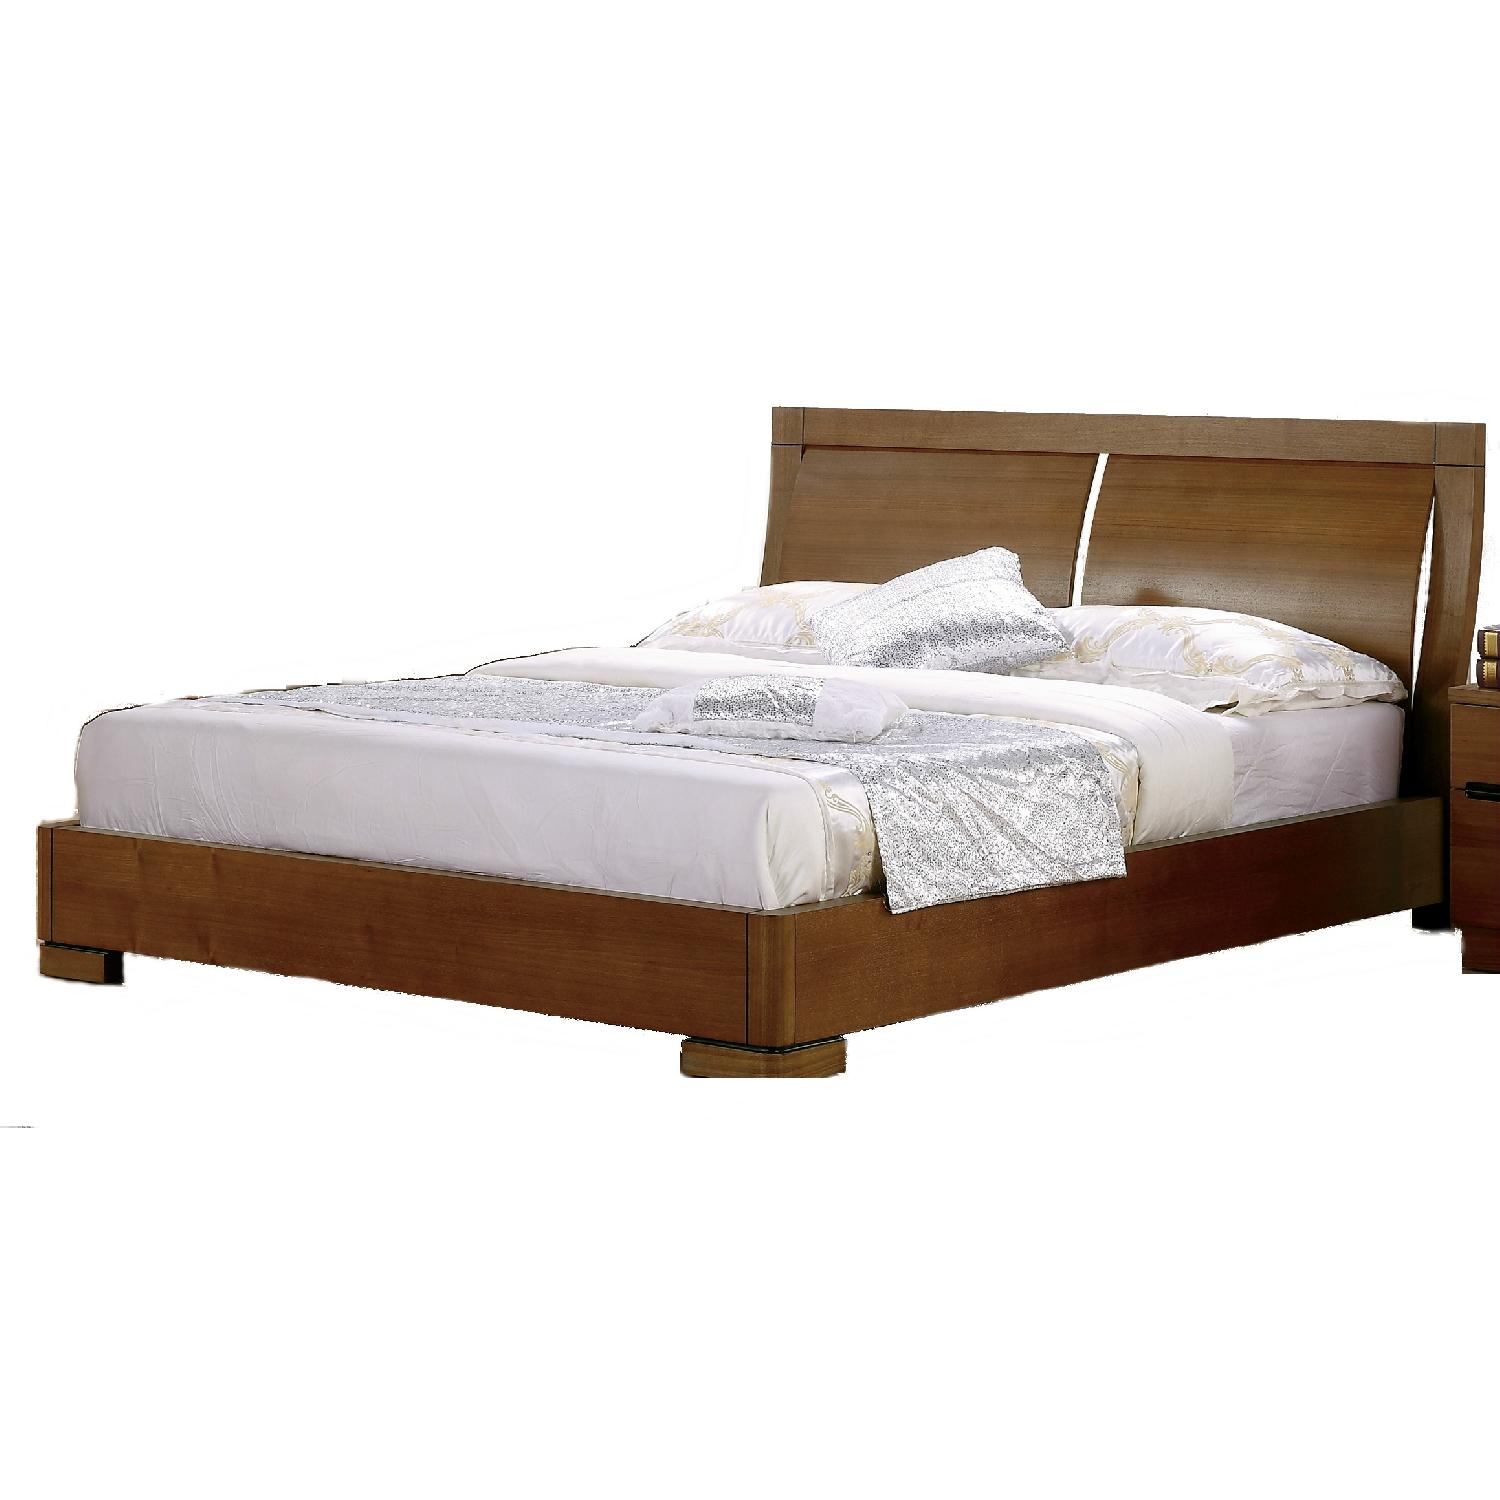 Modern Queen Size Platform Bed In Teak Finish With Clean Line Design Slightly Curved Out Headboard Aptdeco